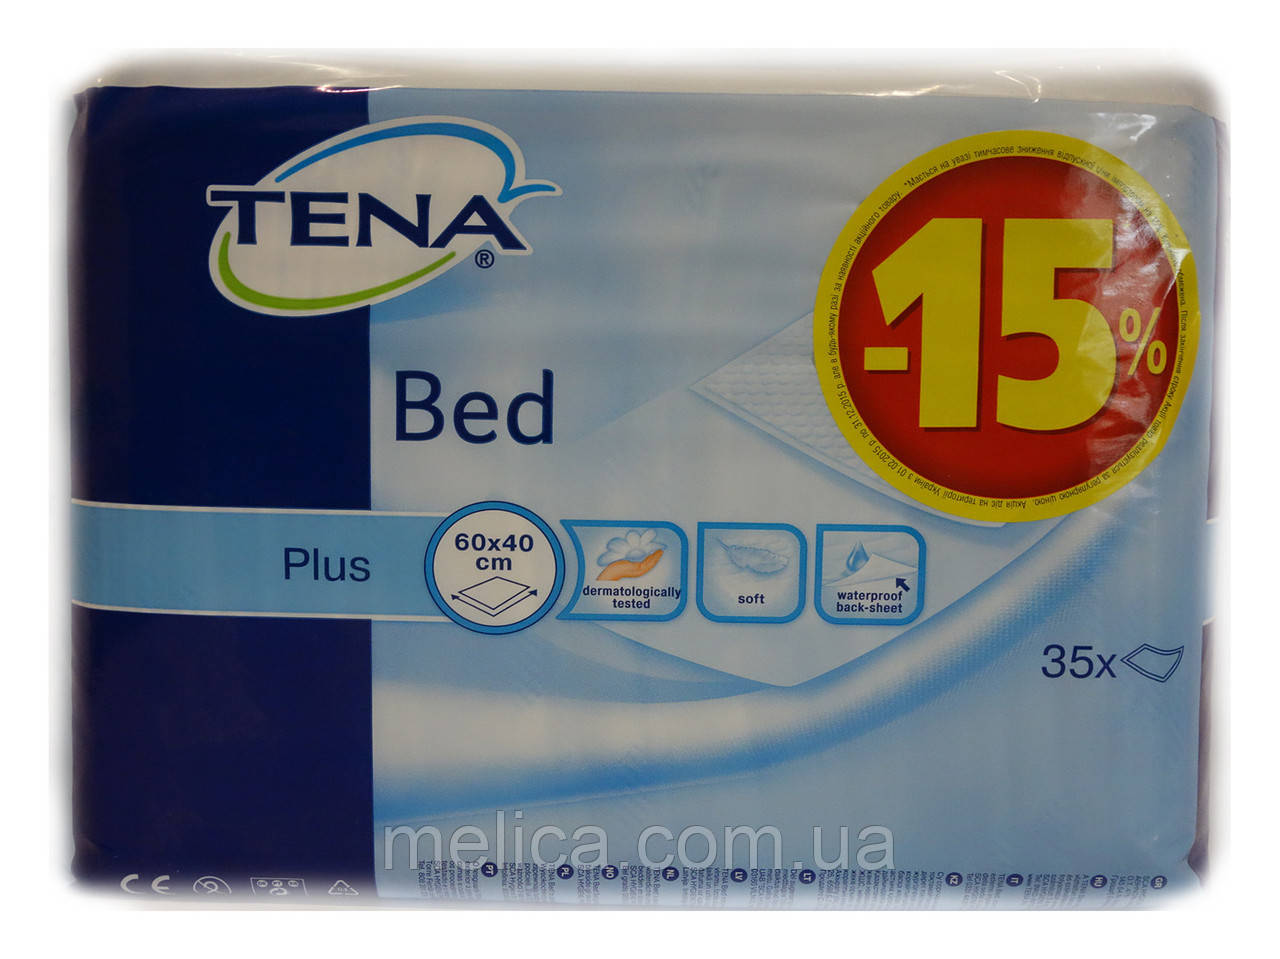 Пеленки TENA Bed Plus (60х40 см) – 35 шт.